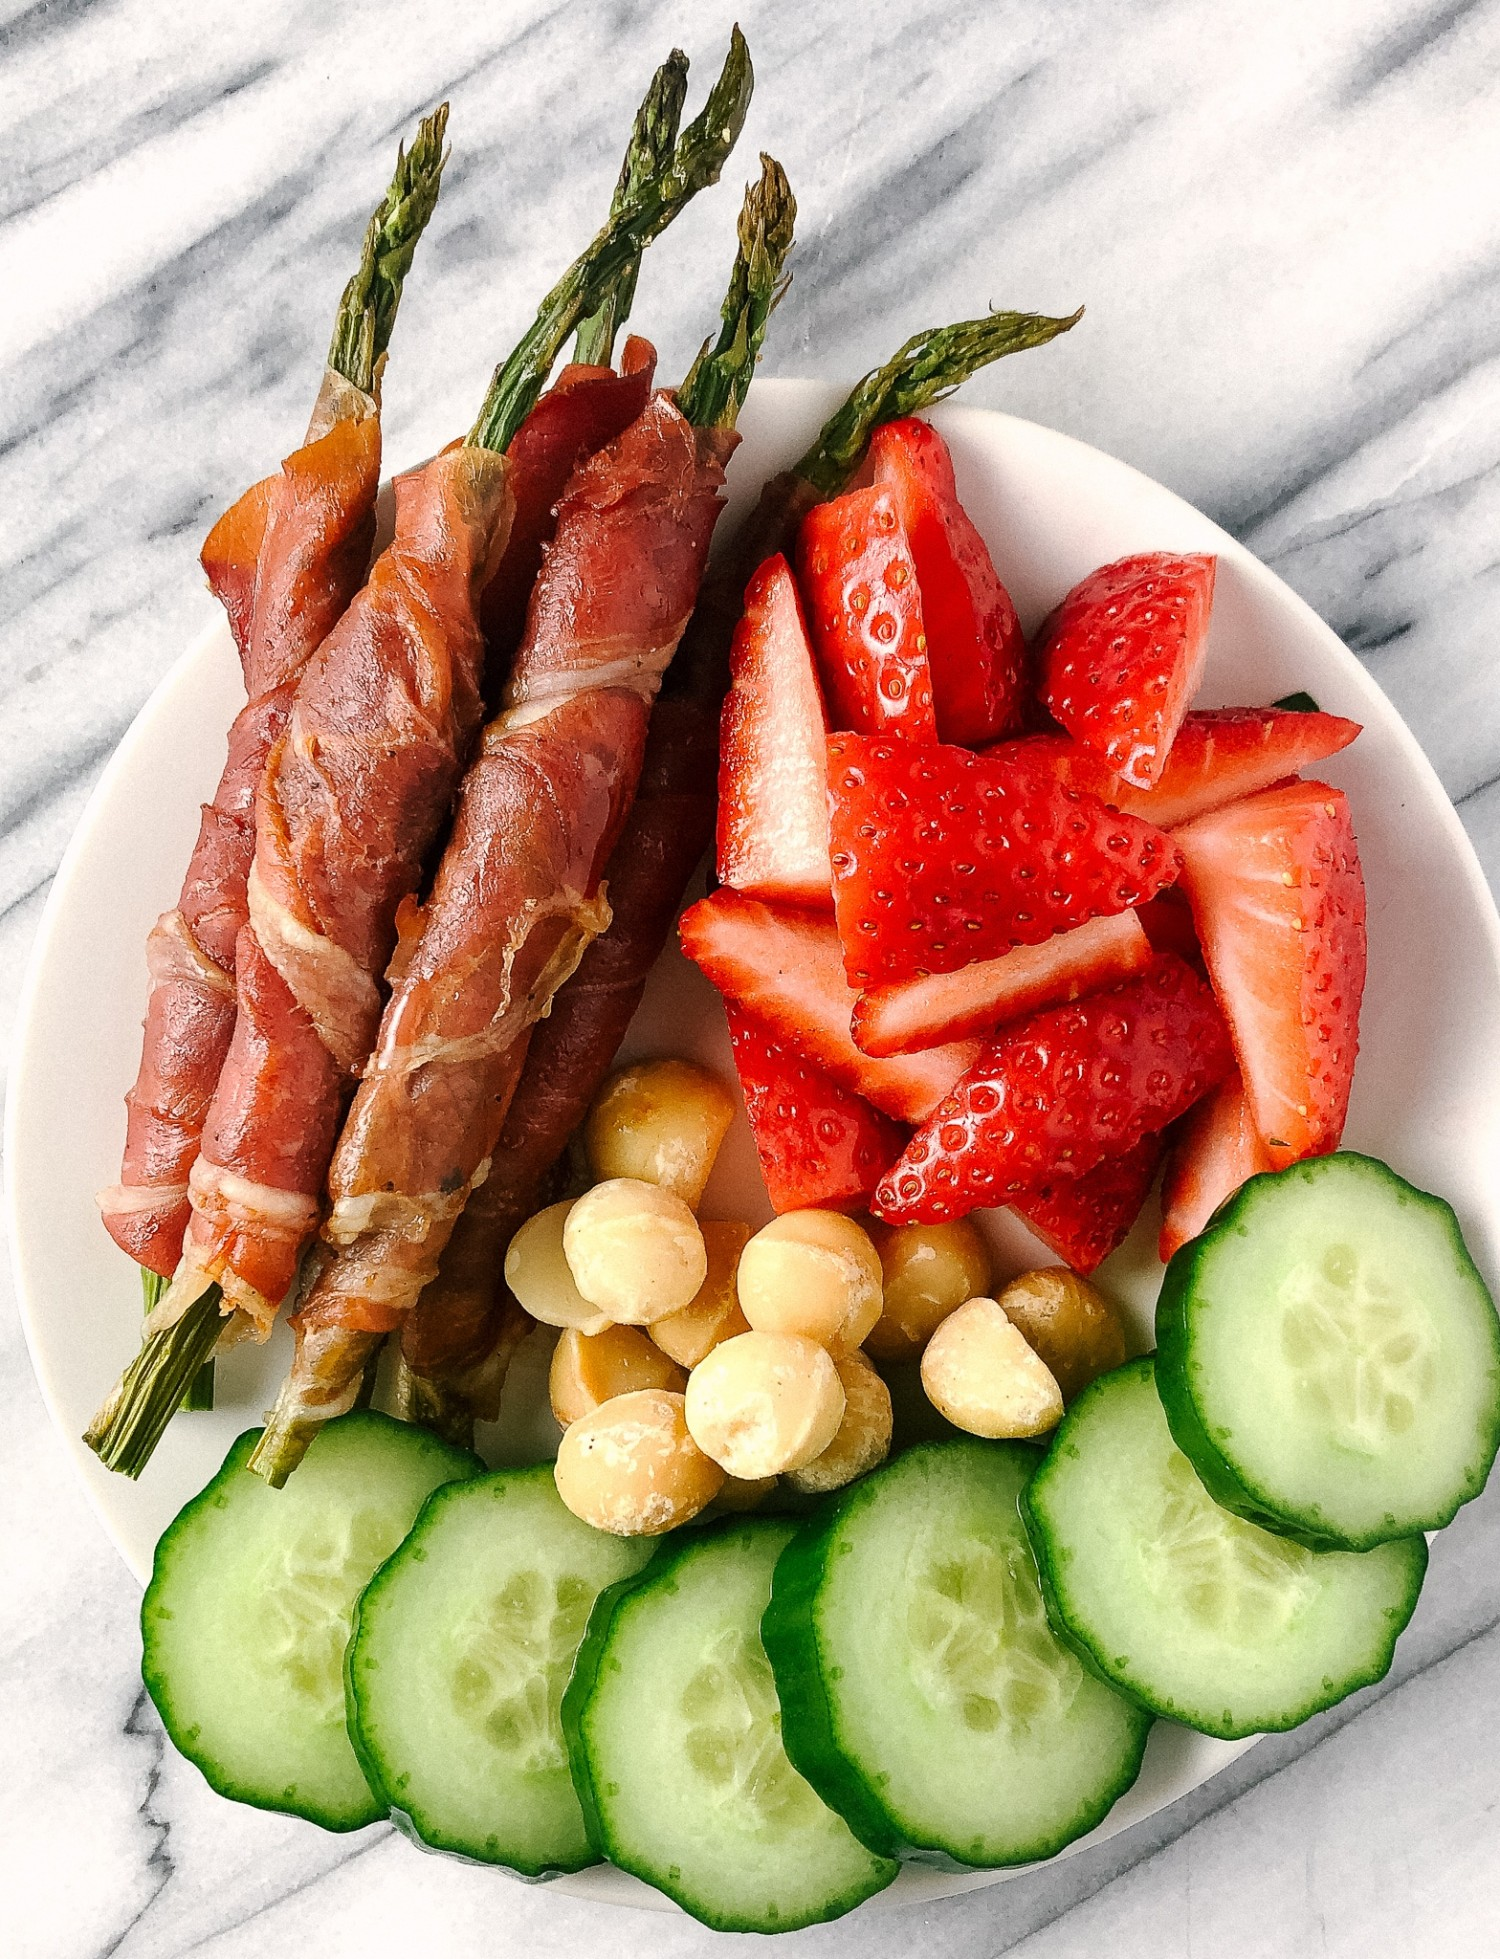 Above view of prosciutto wrapped asparagus on a snack plate with strawberries, macadamia nuts and sliced cucumbers